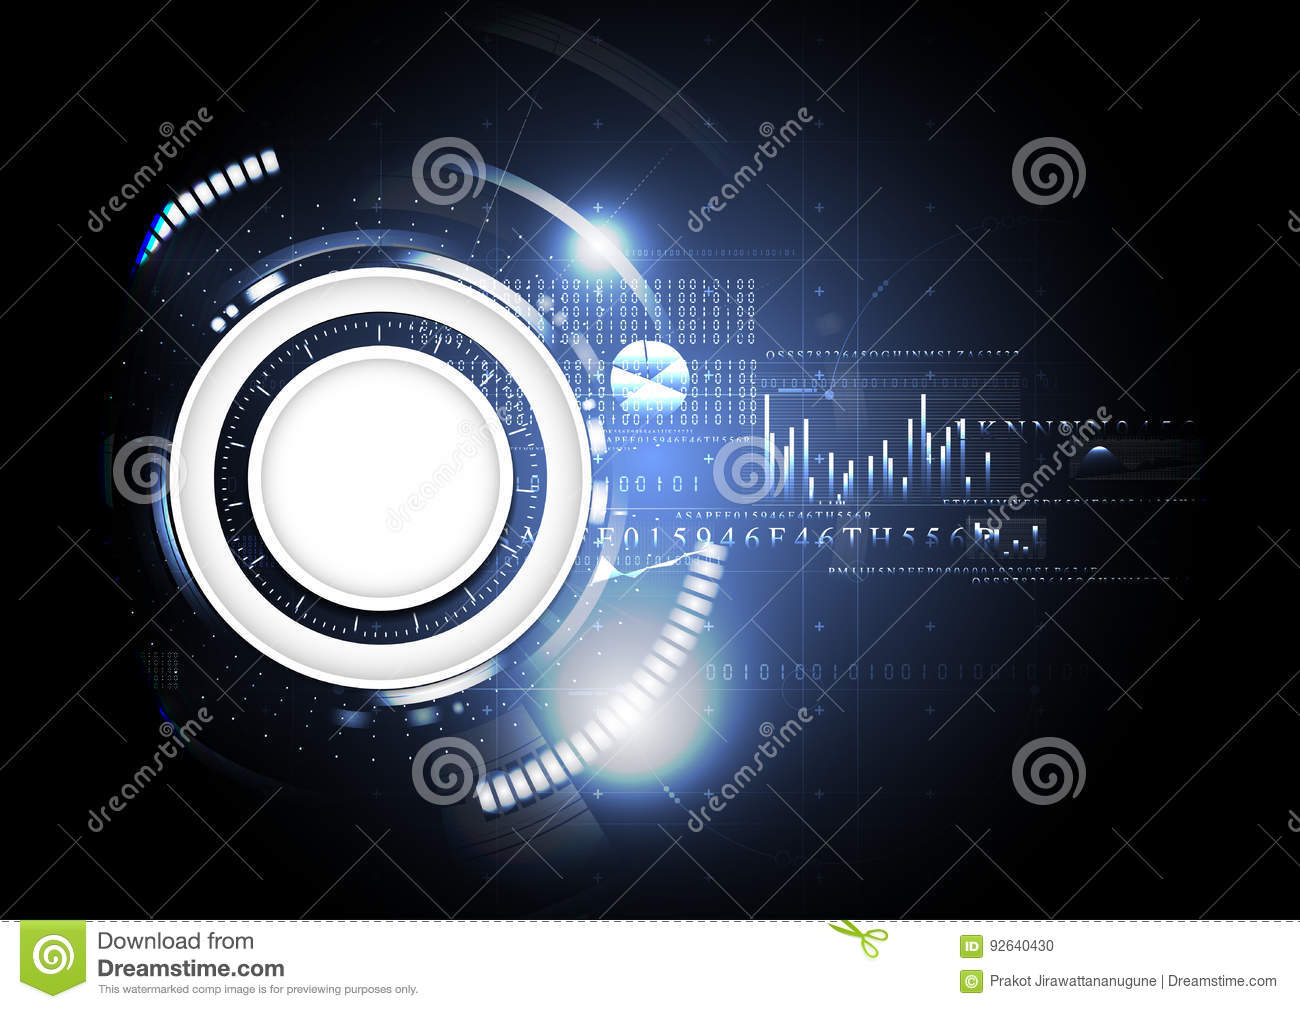 Technological abstract digital blueprint interface modern light technological abstract digital blueprint interface modern light malvernweather Images